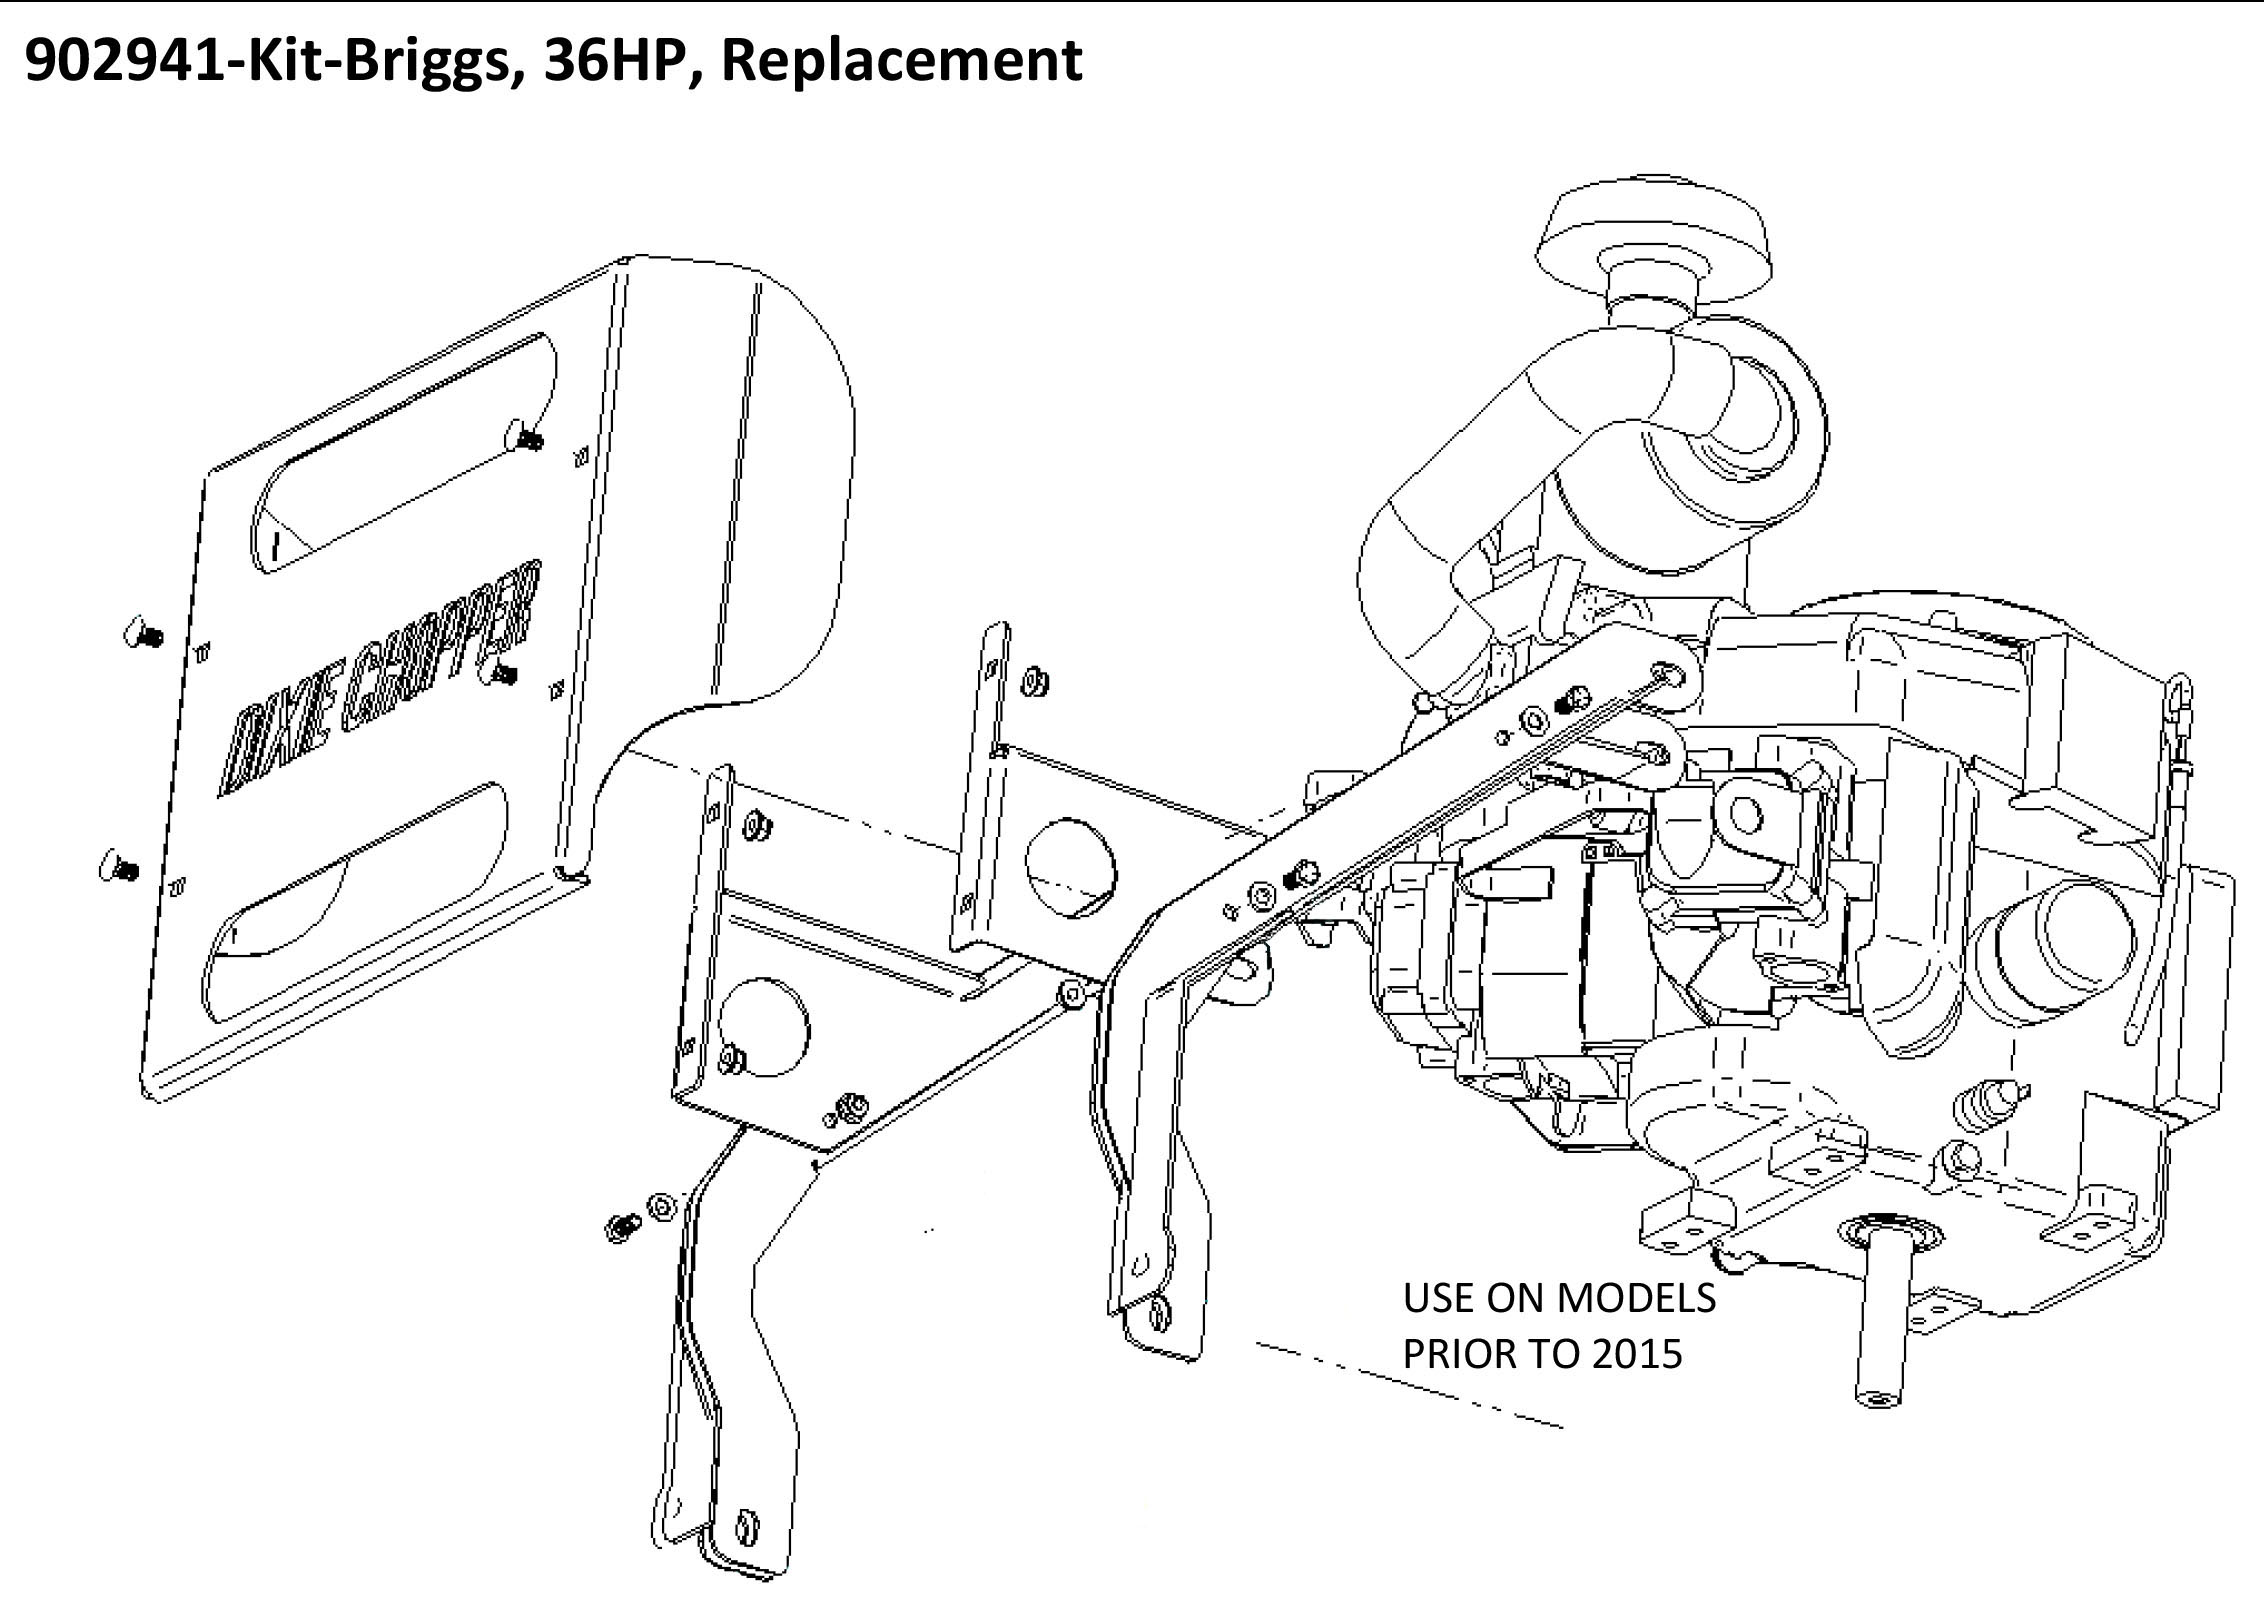 details about 902941 dixie chopper engine kit for 36 hp vanguard electric  clutch engines